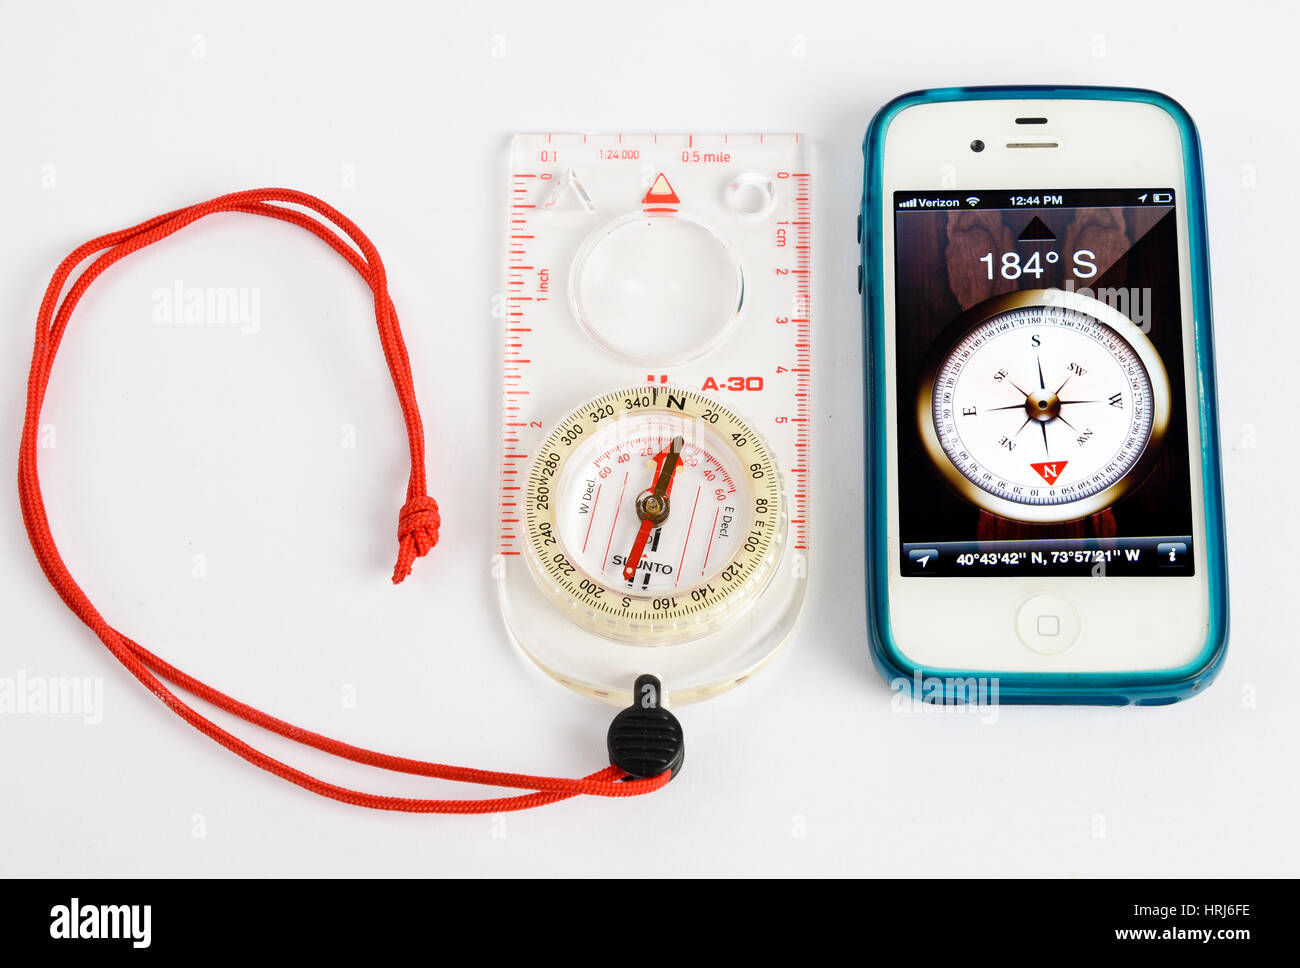 Electronic and Standard Magnetic Analogue Compass - Stock Image